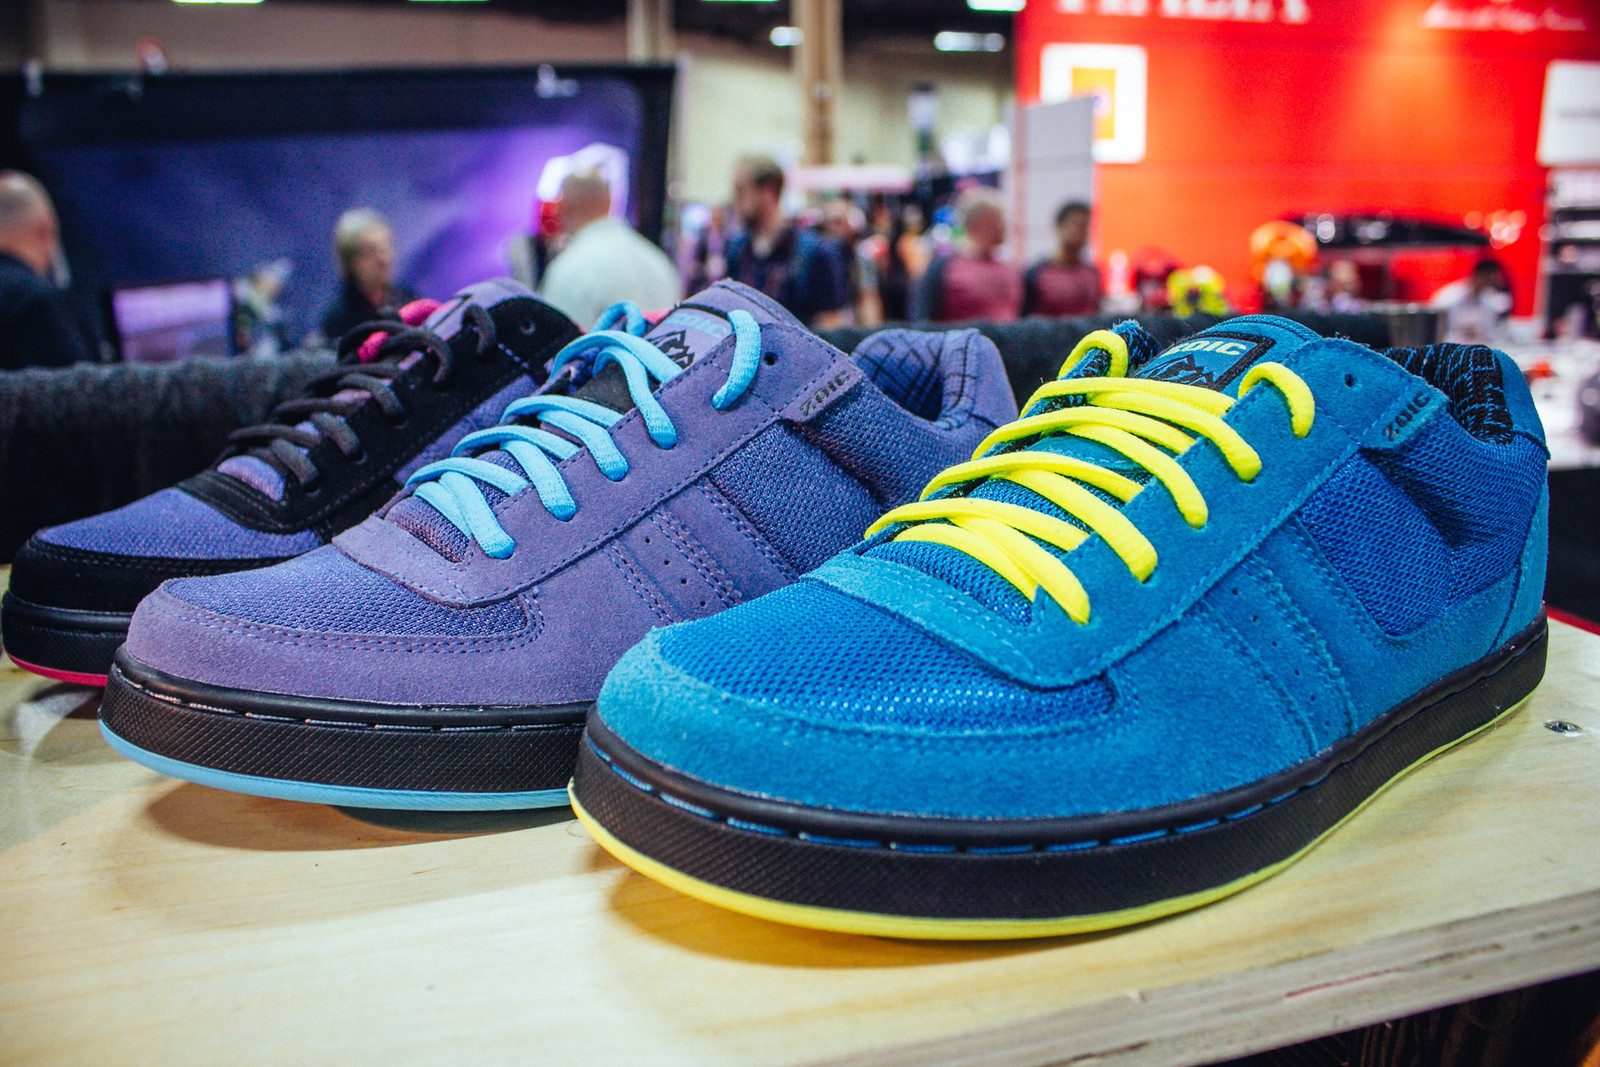 2017 Zoic Women's Shoes and Apparel - INTERBIKE - 2017 Women's Mountain Bike Gear - Mountain Biking Pictures - Vital MTB